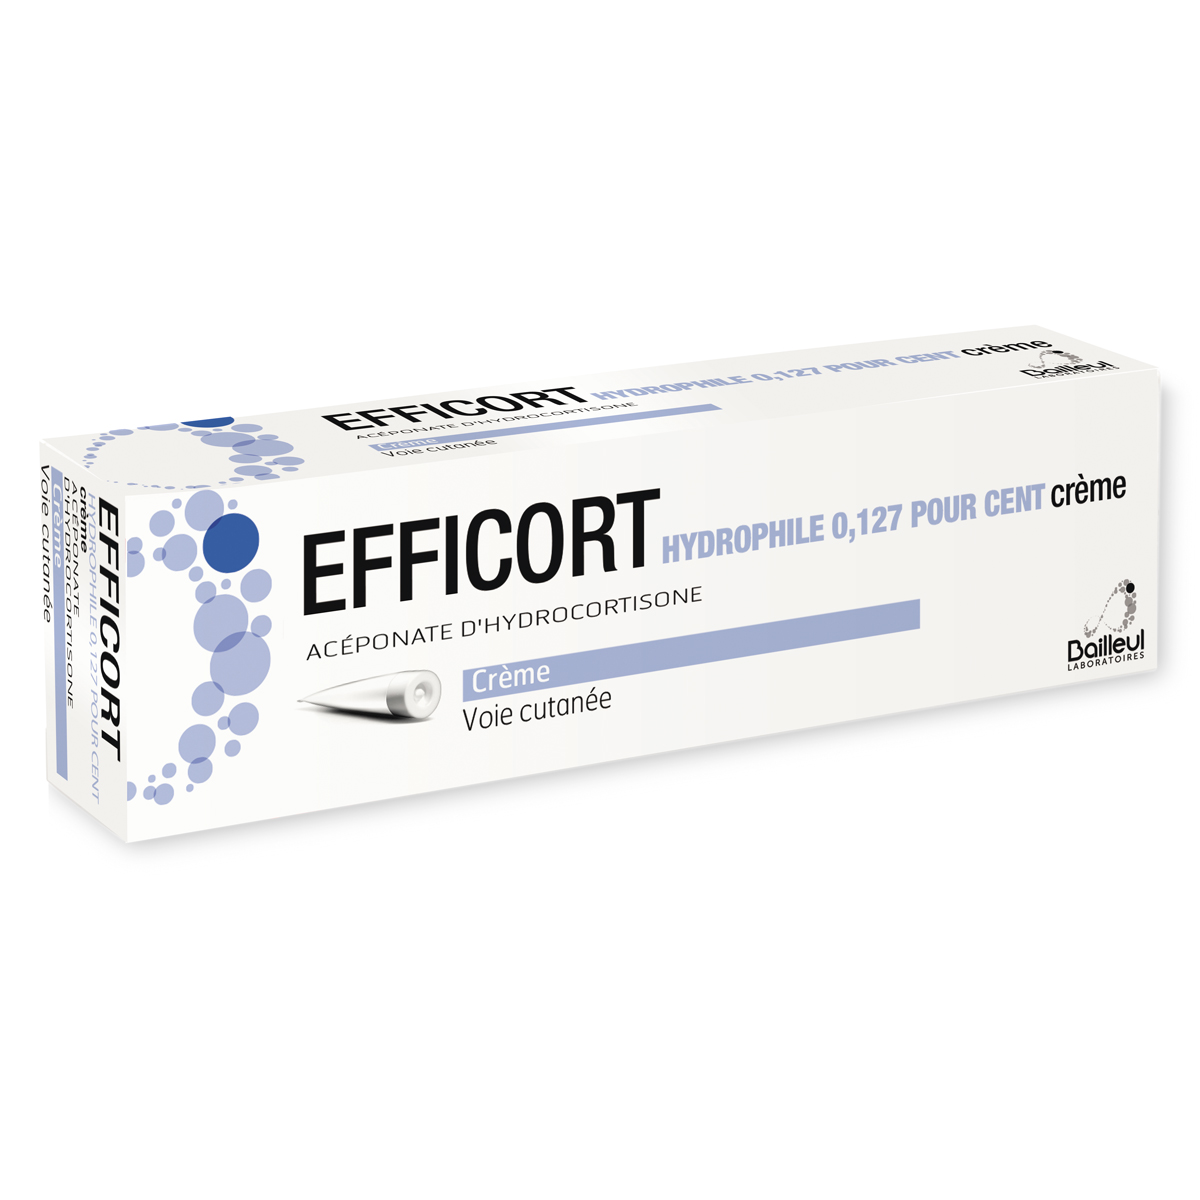 Efficort Cream